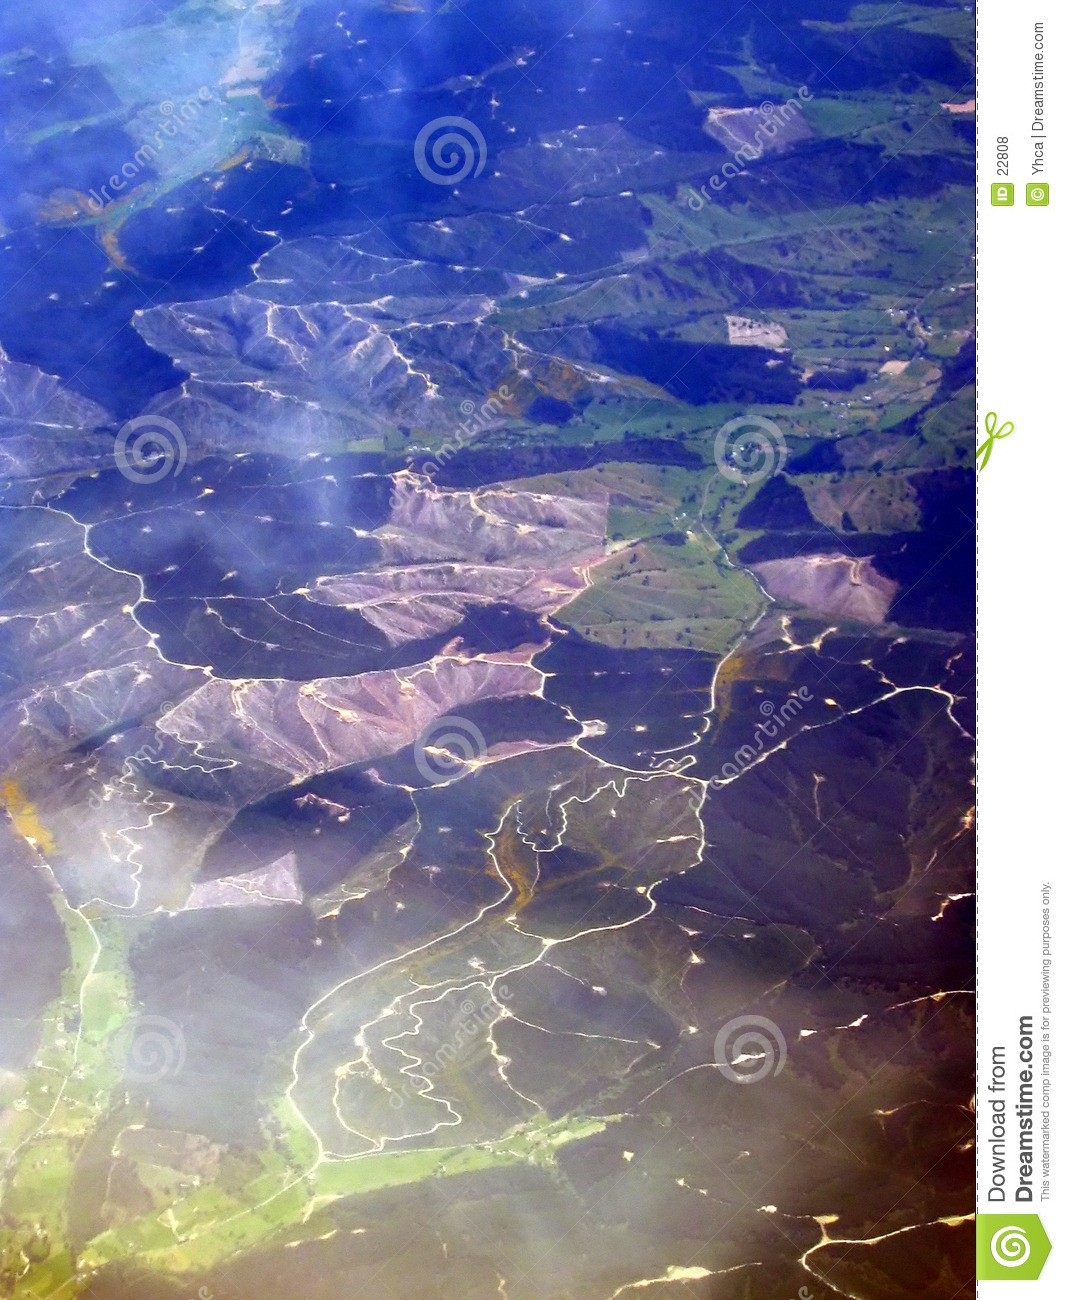 Aerial view of hills & rivers